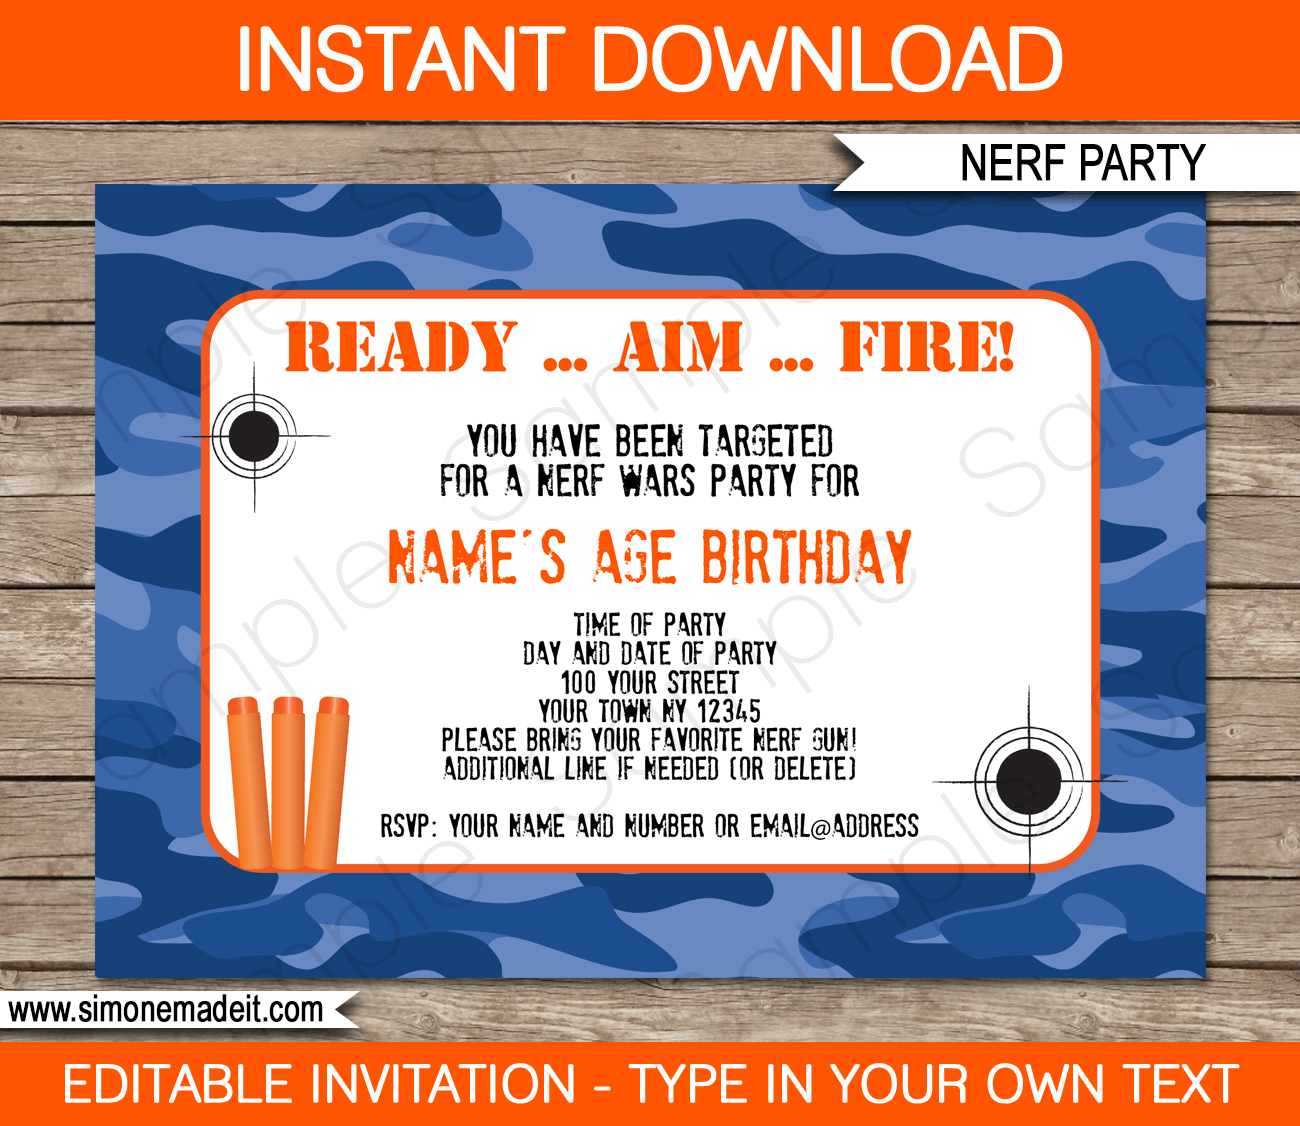 Nerf birthday party invitations editable template blue camo nerf birthday party invitations blue camo editable printable diy template instant download filmwisefo